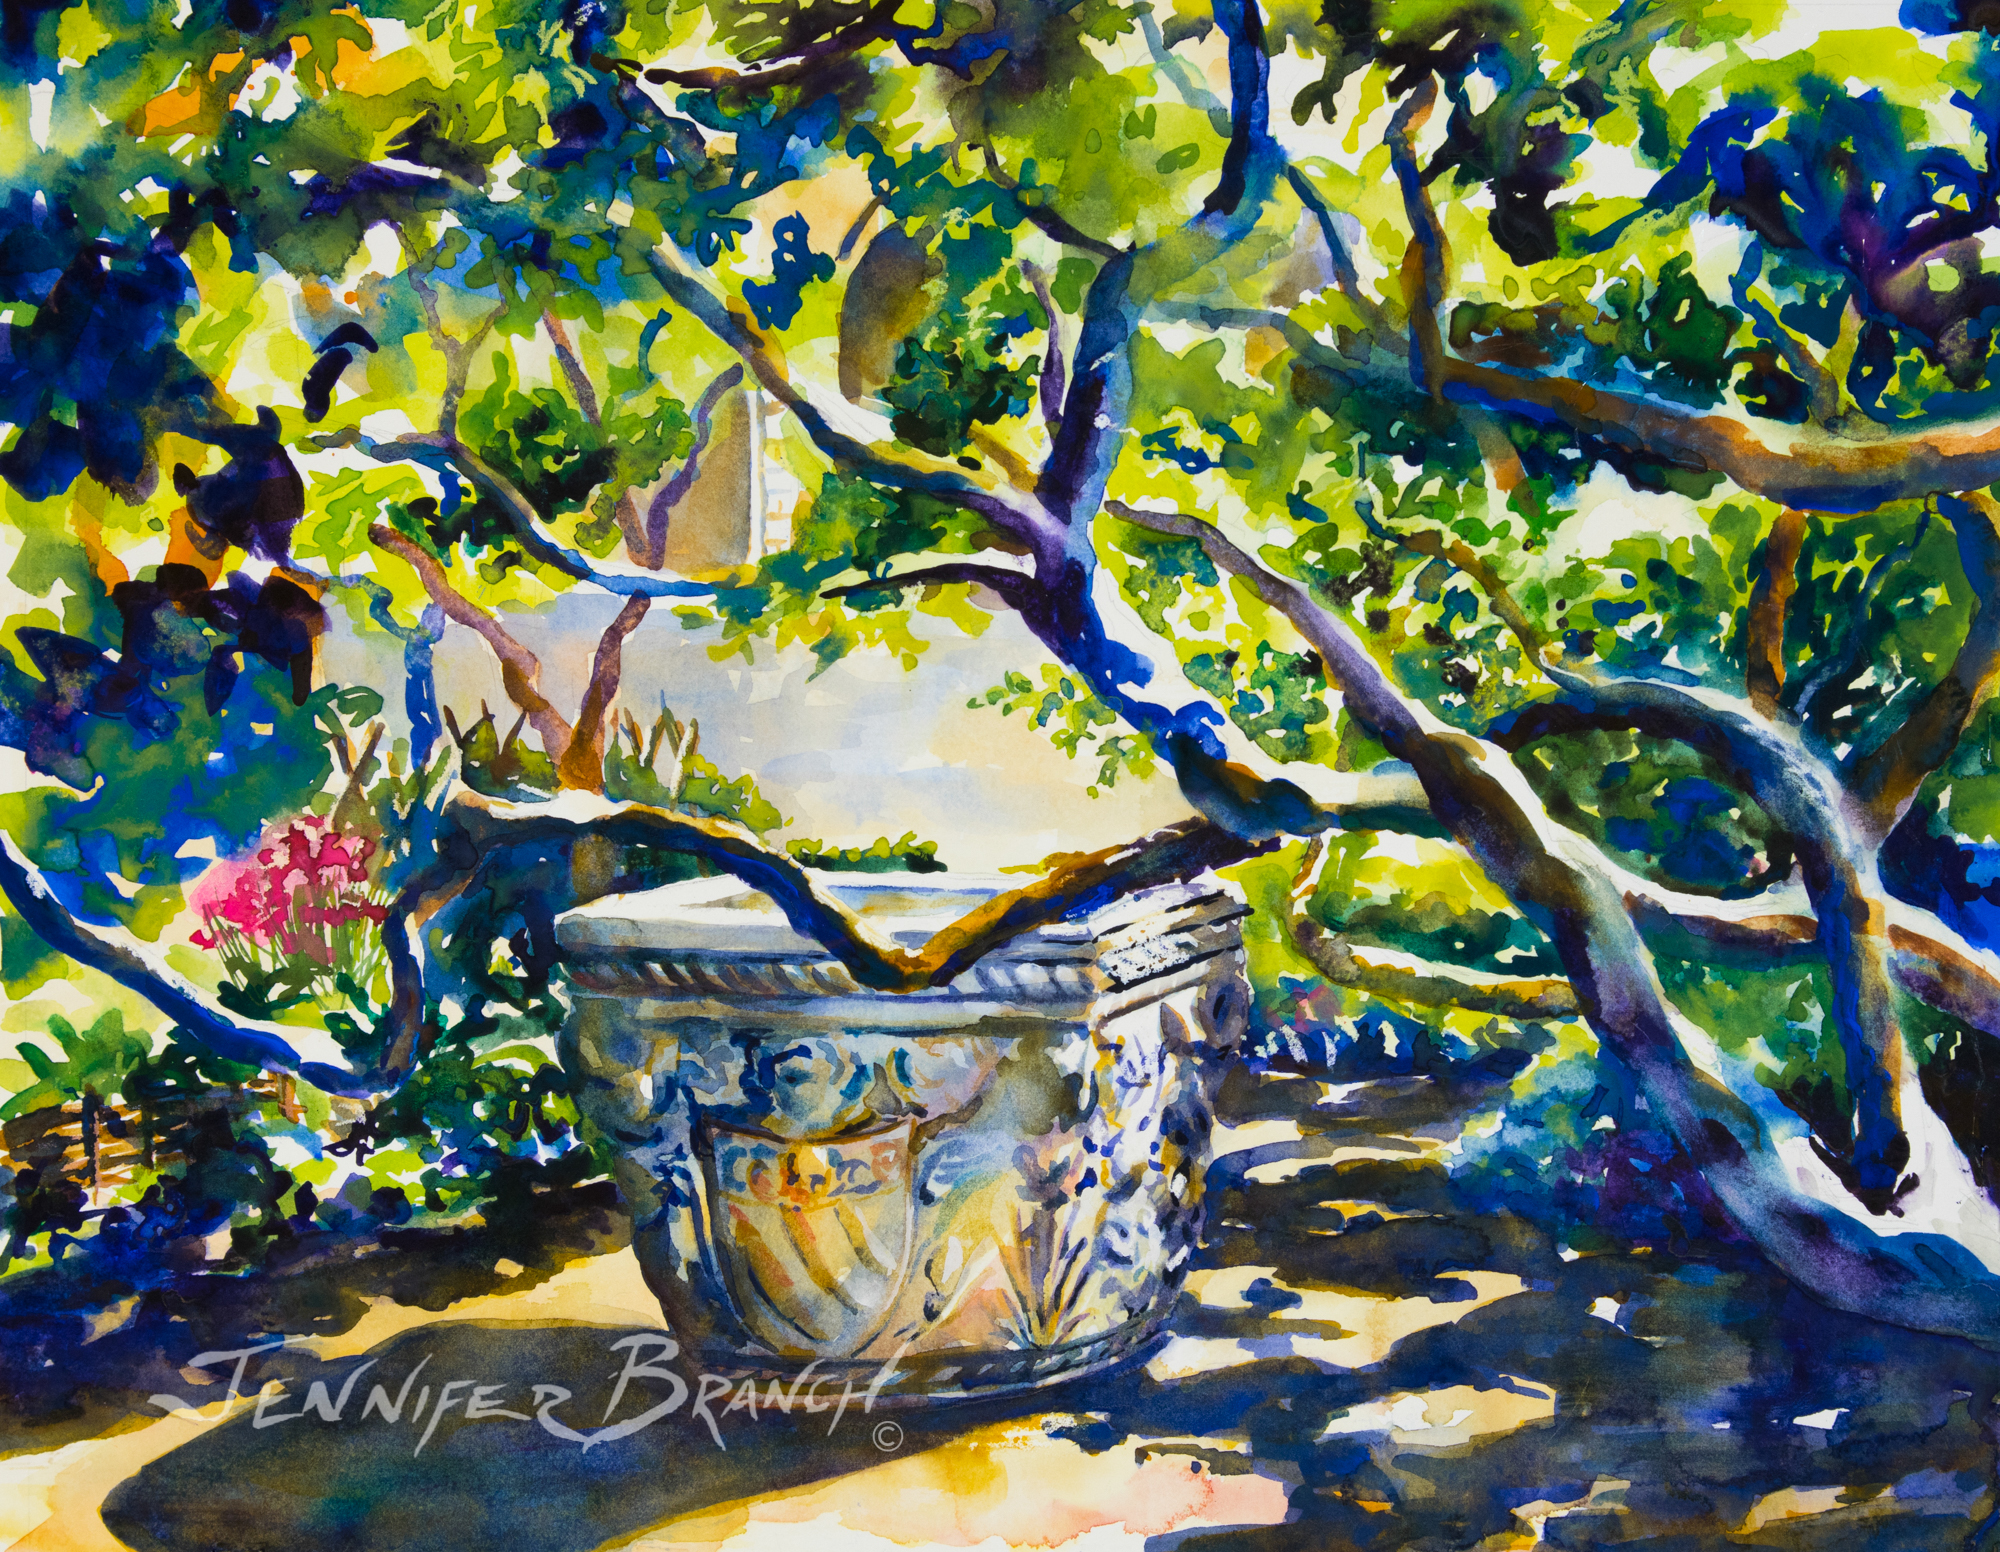 Watercolor painting of gnarled pear trees encircling an ancient font at The Cloisters Museum in New York.